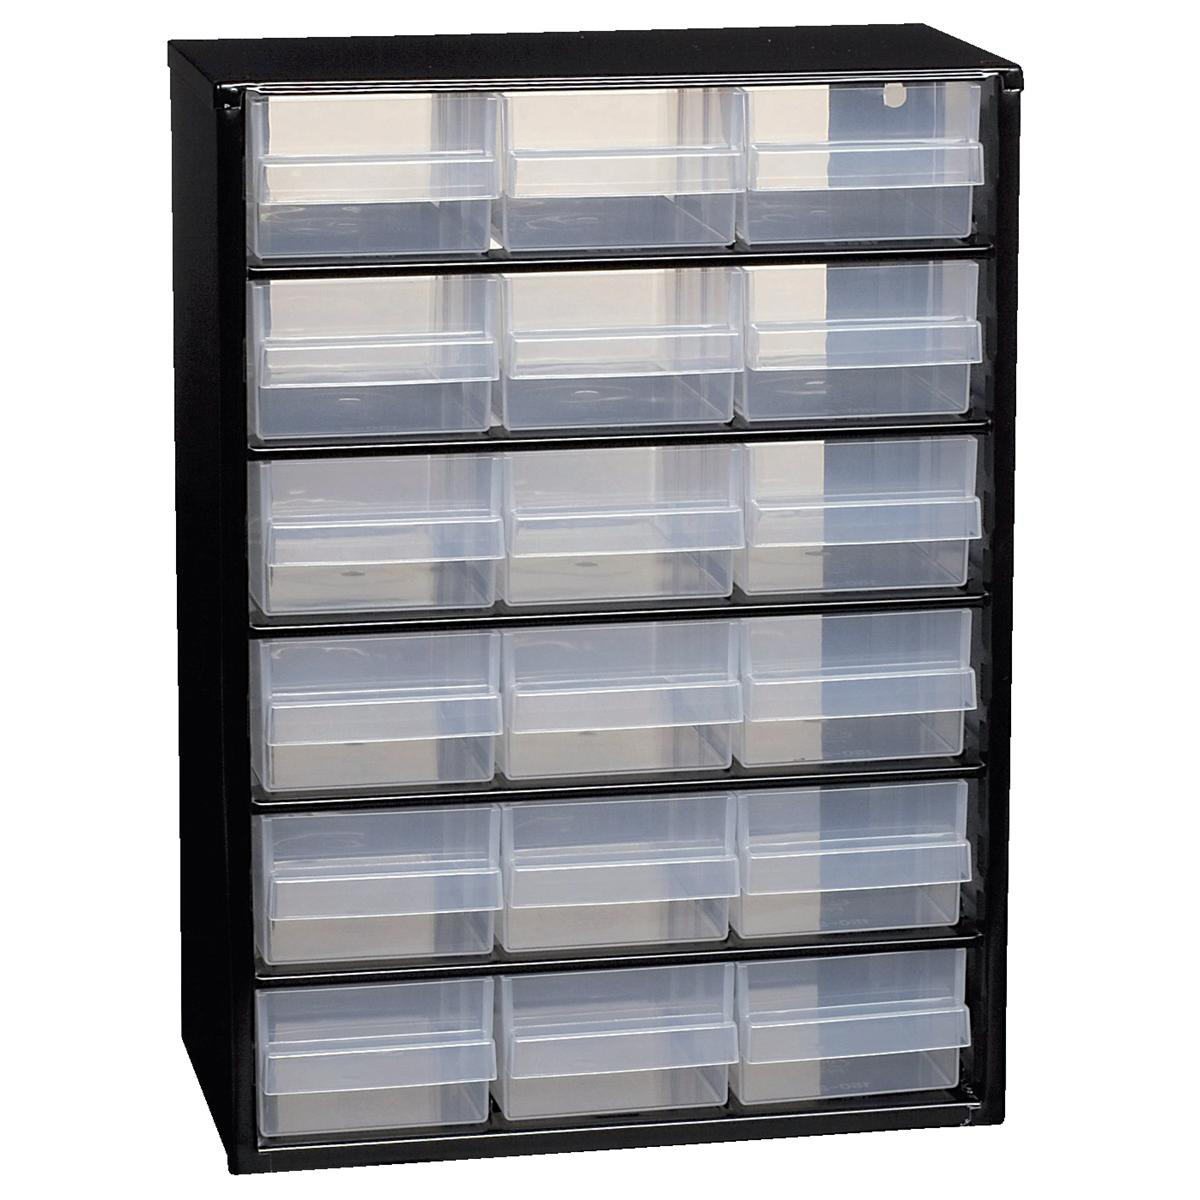 Image for Raaco Steel Cabinet 18 Polypropylene Drawers Black Ref 132022